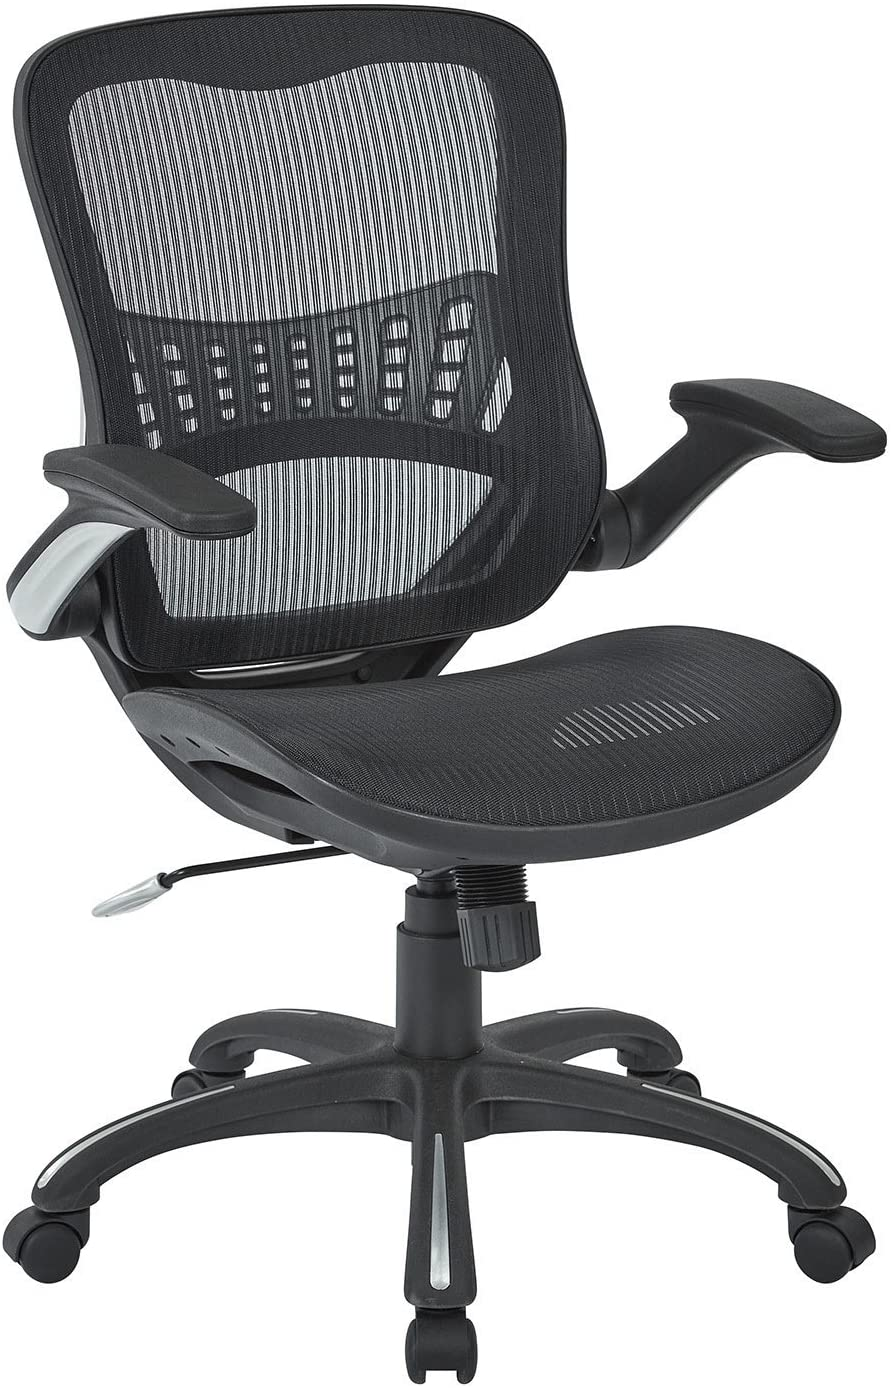 Office Star Mesh Back & Seat Chair